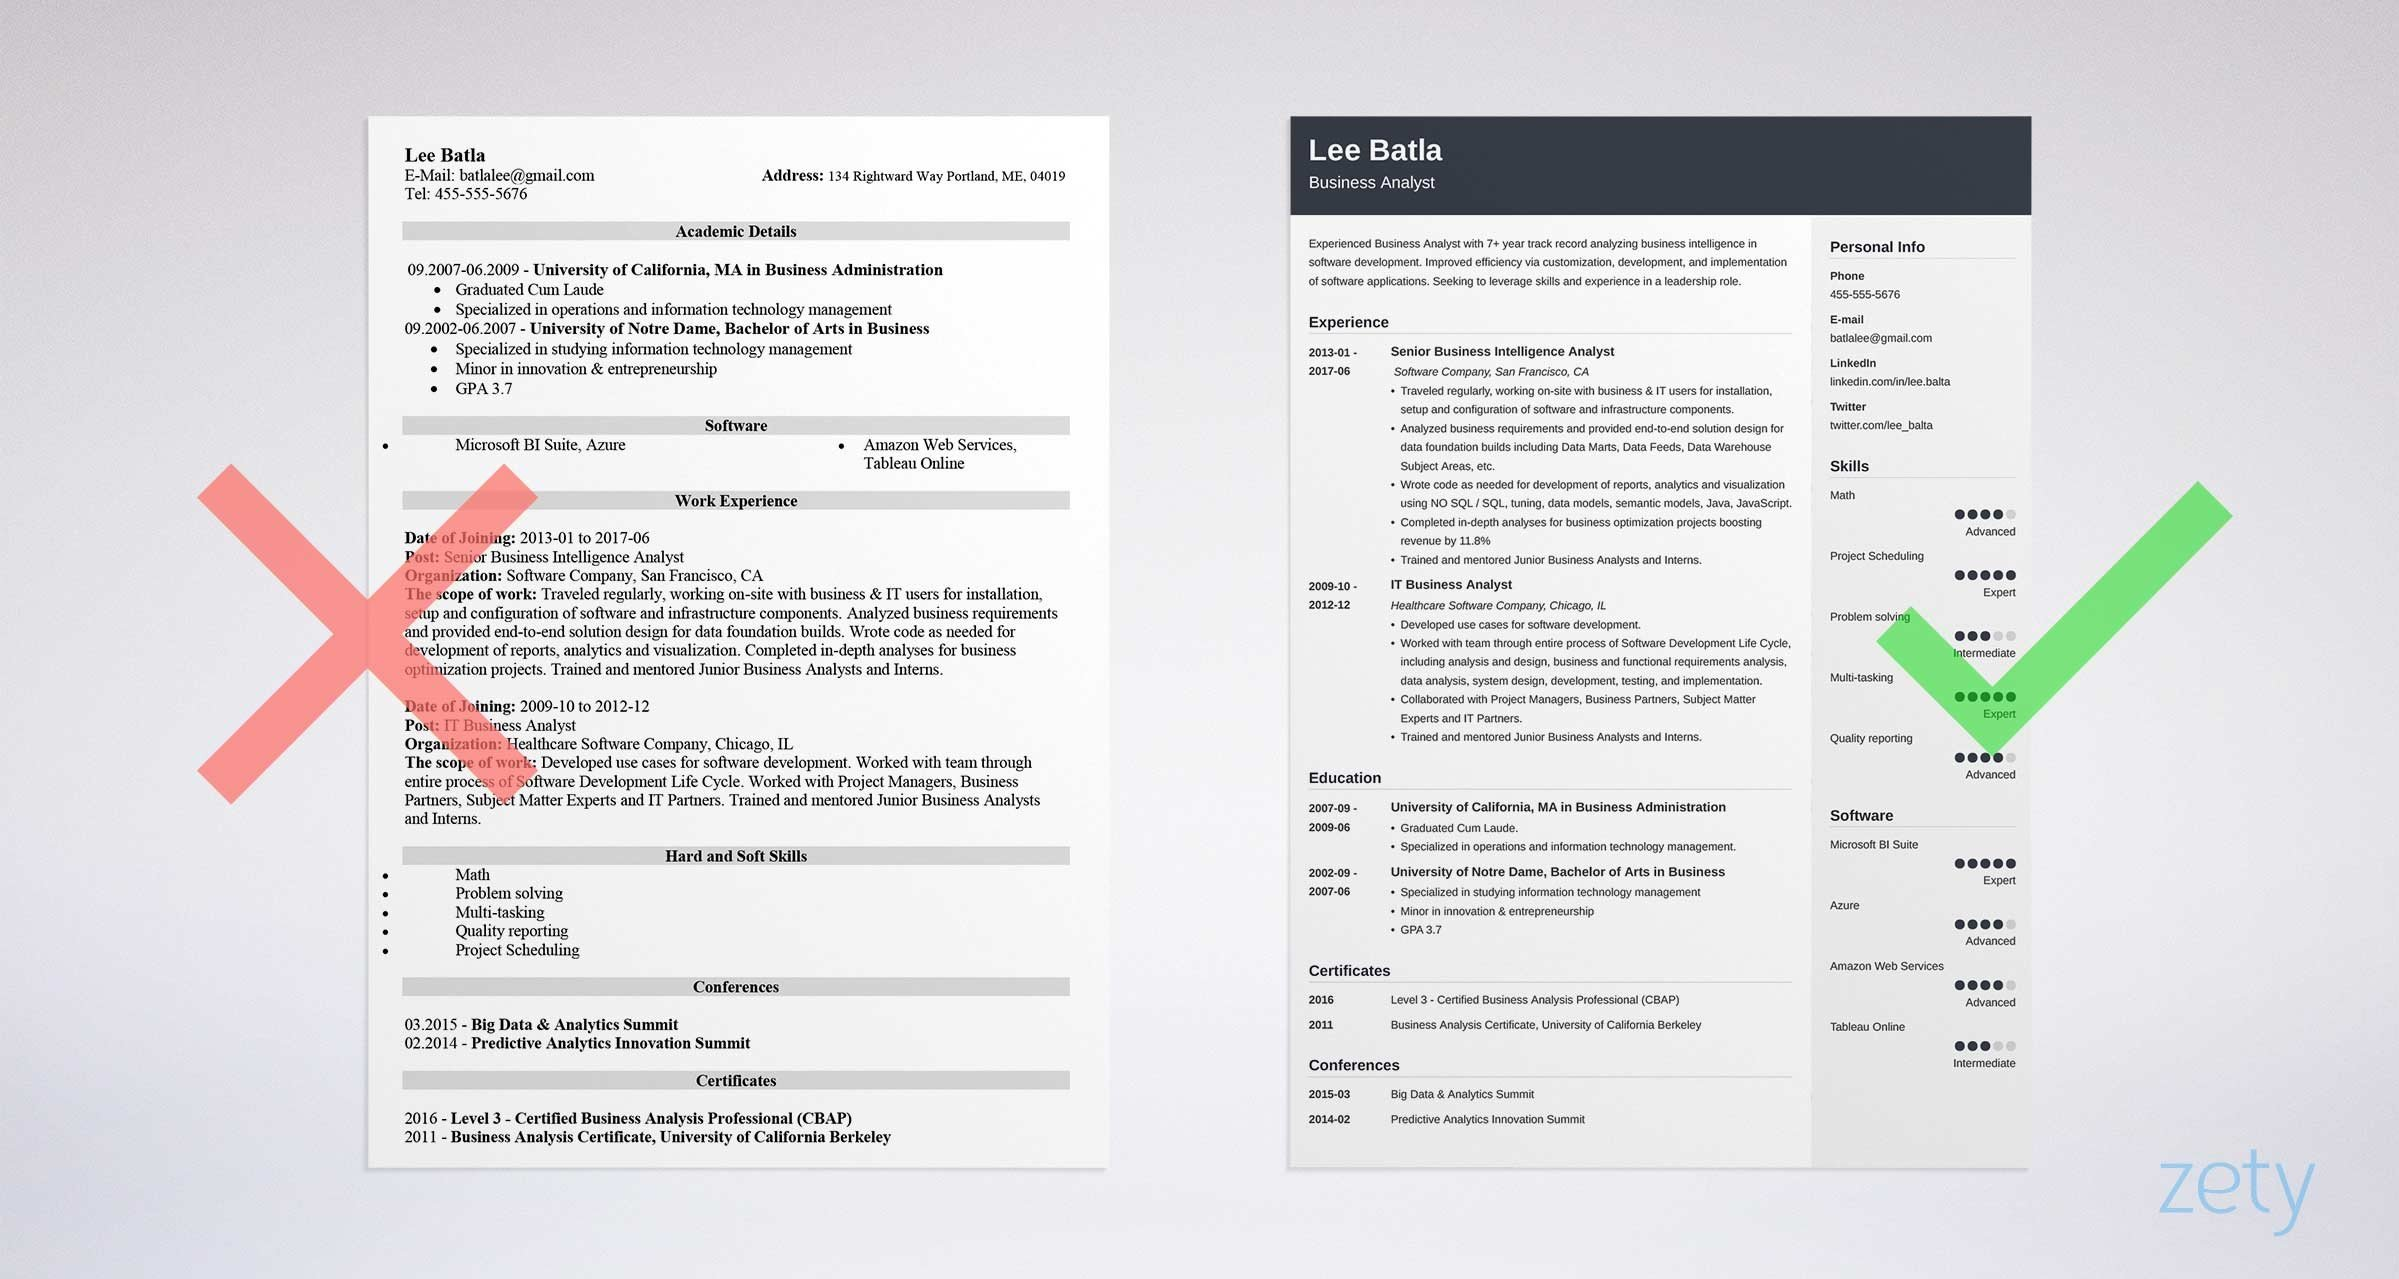 bad vs good business analyst resume template